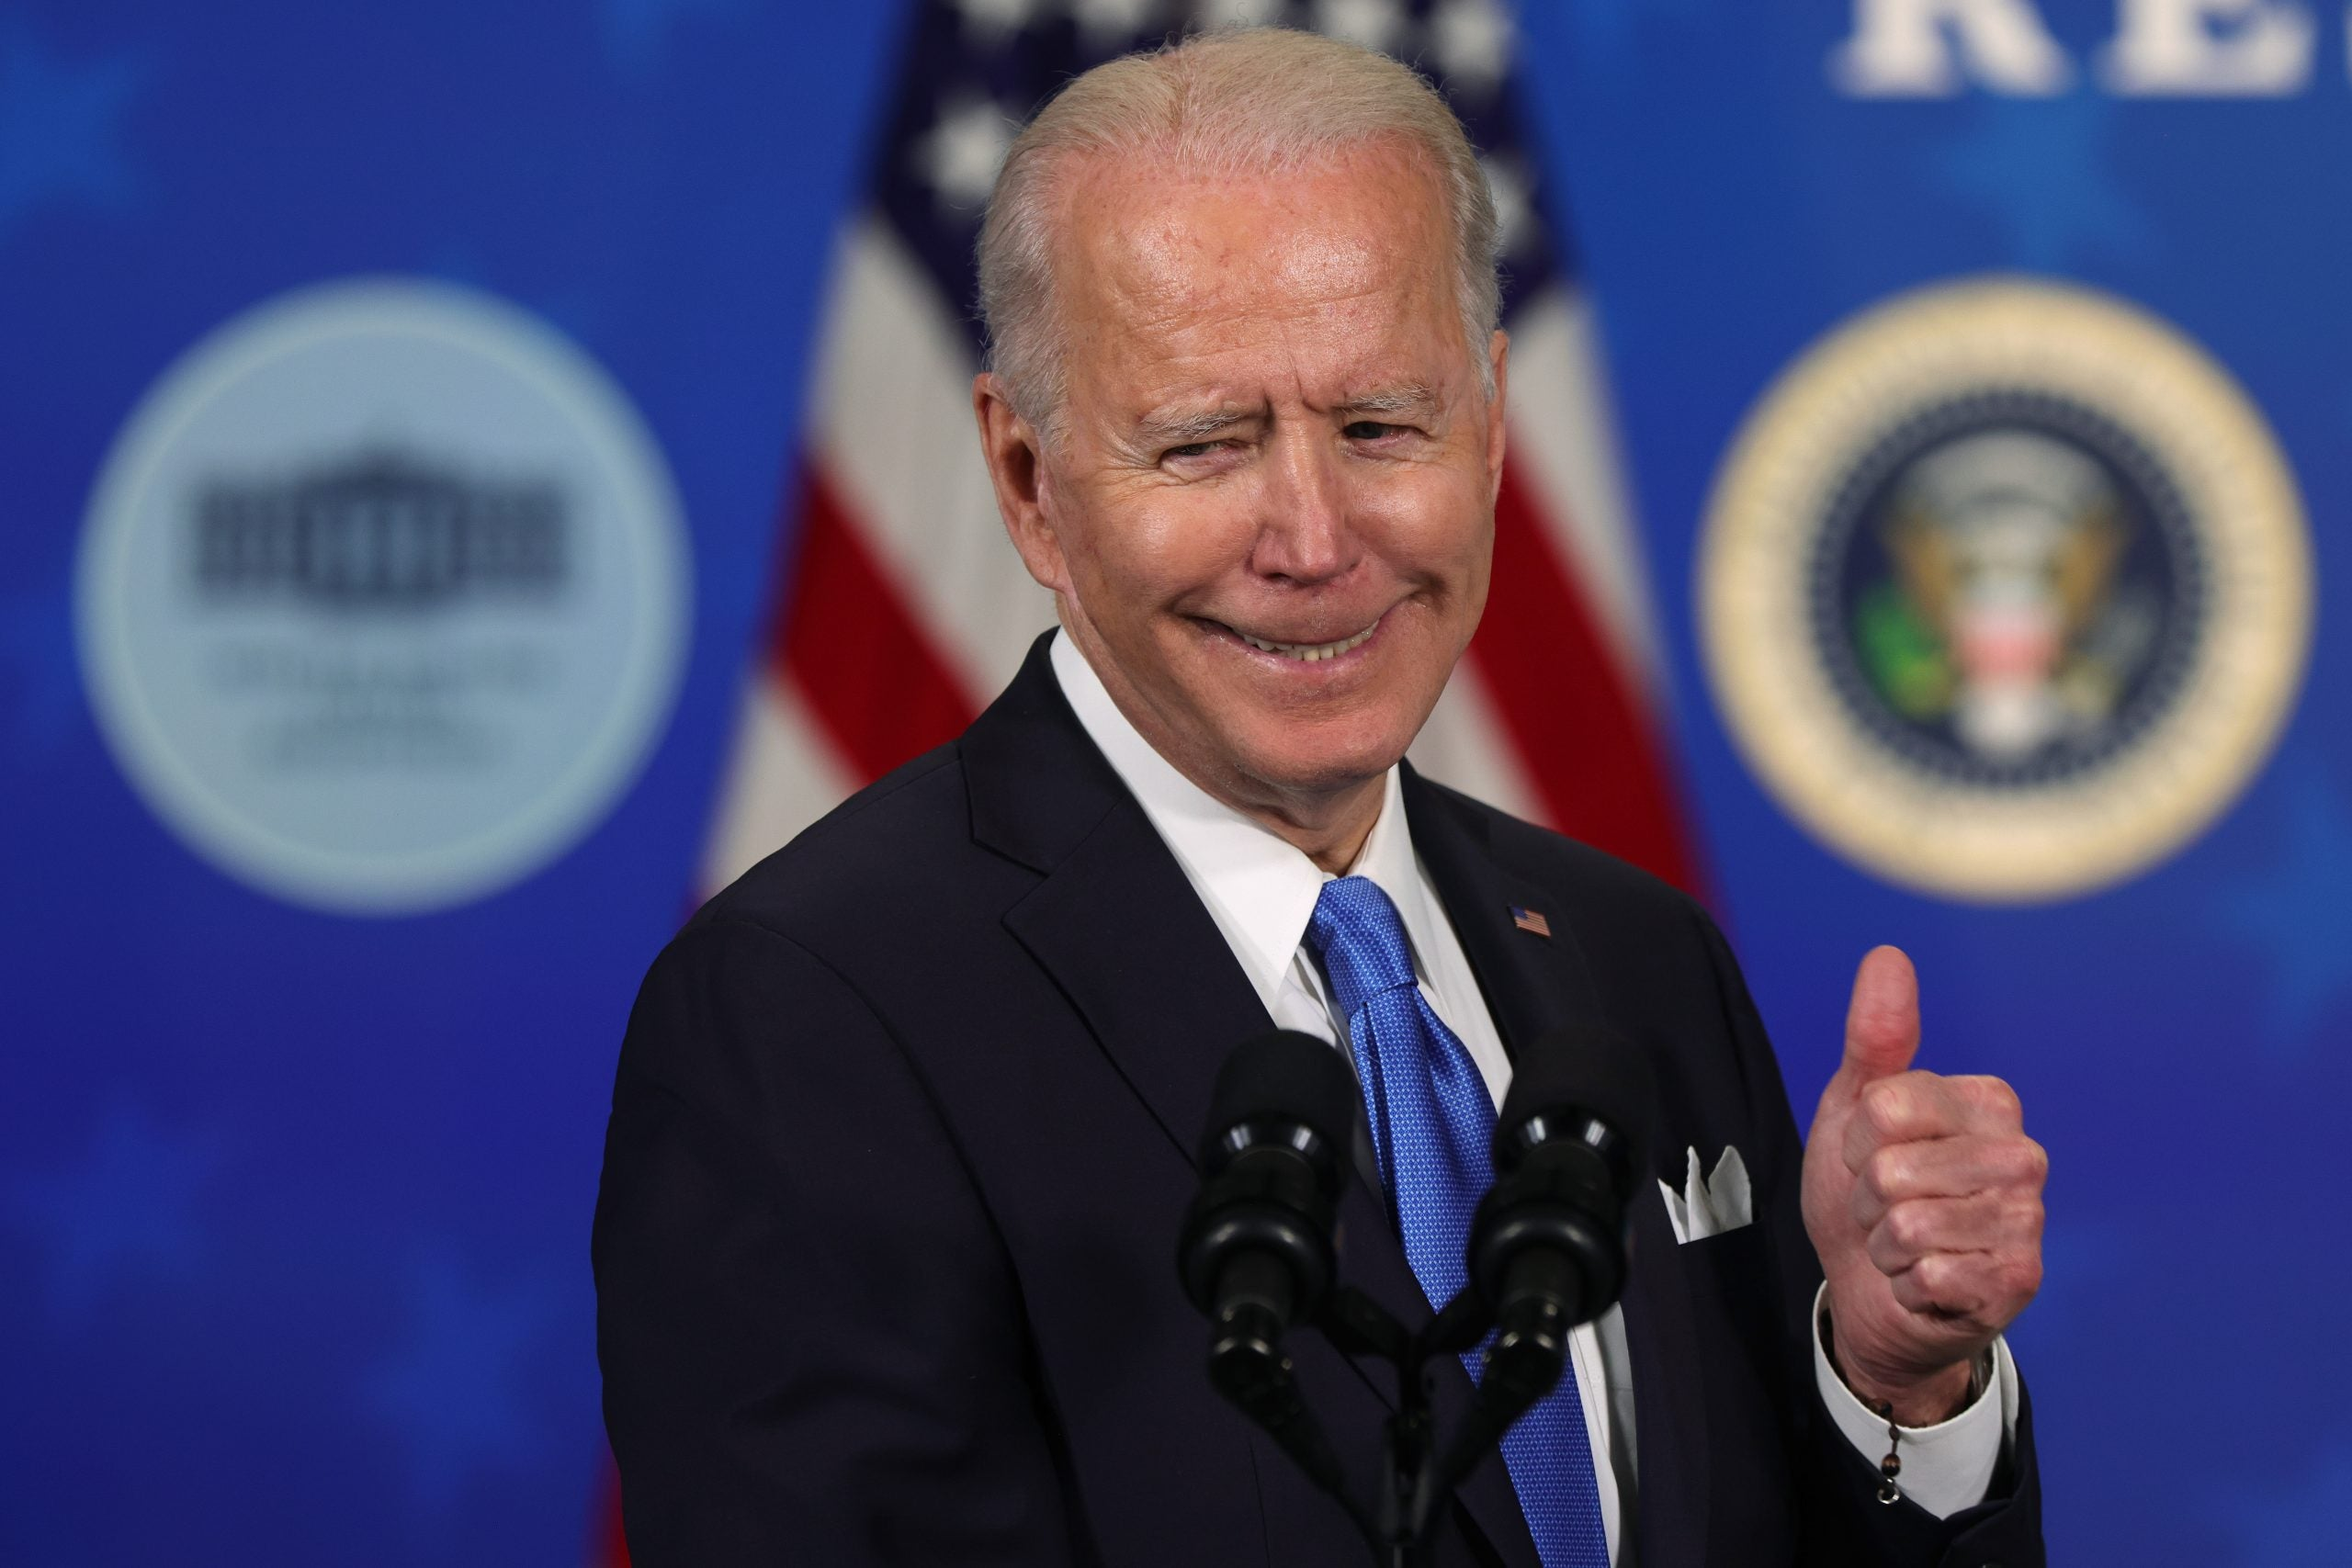 What does Joe Biden's $1.9trn stimulus mean for conservatives?